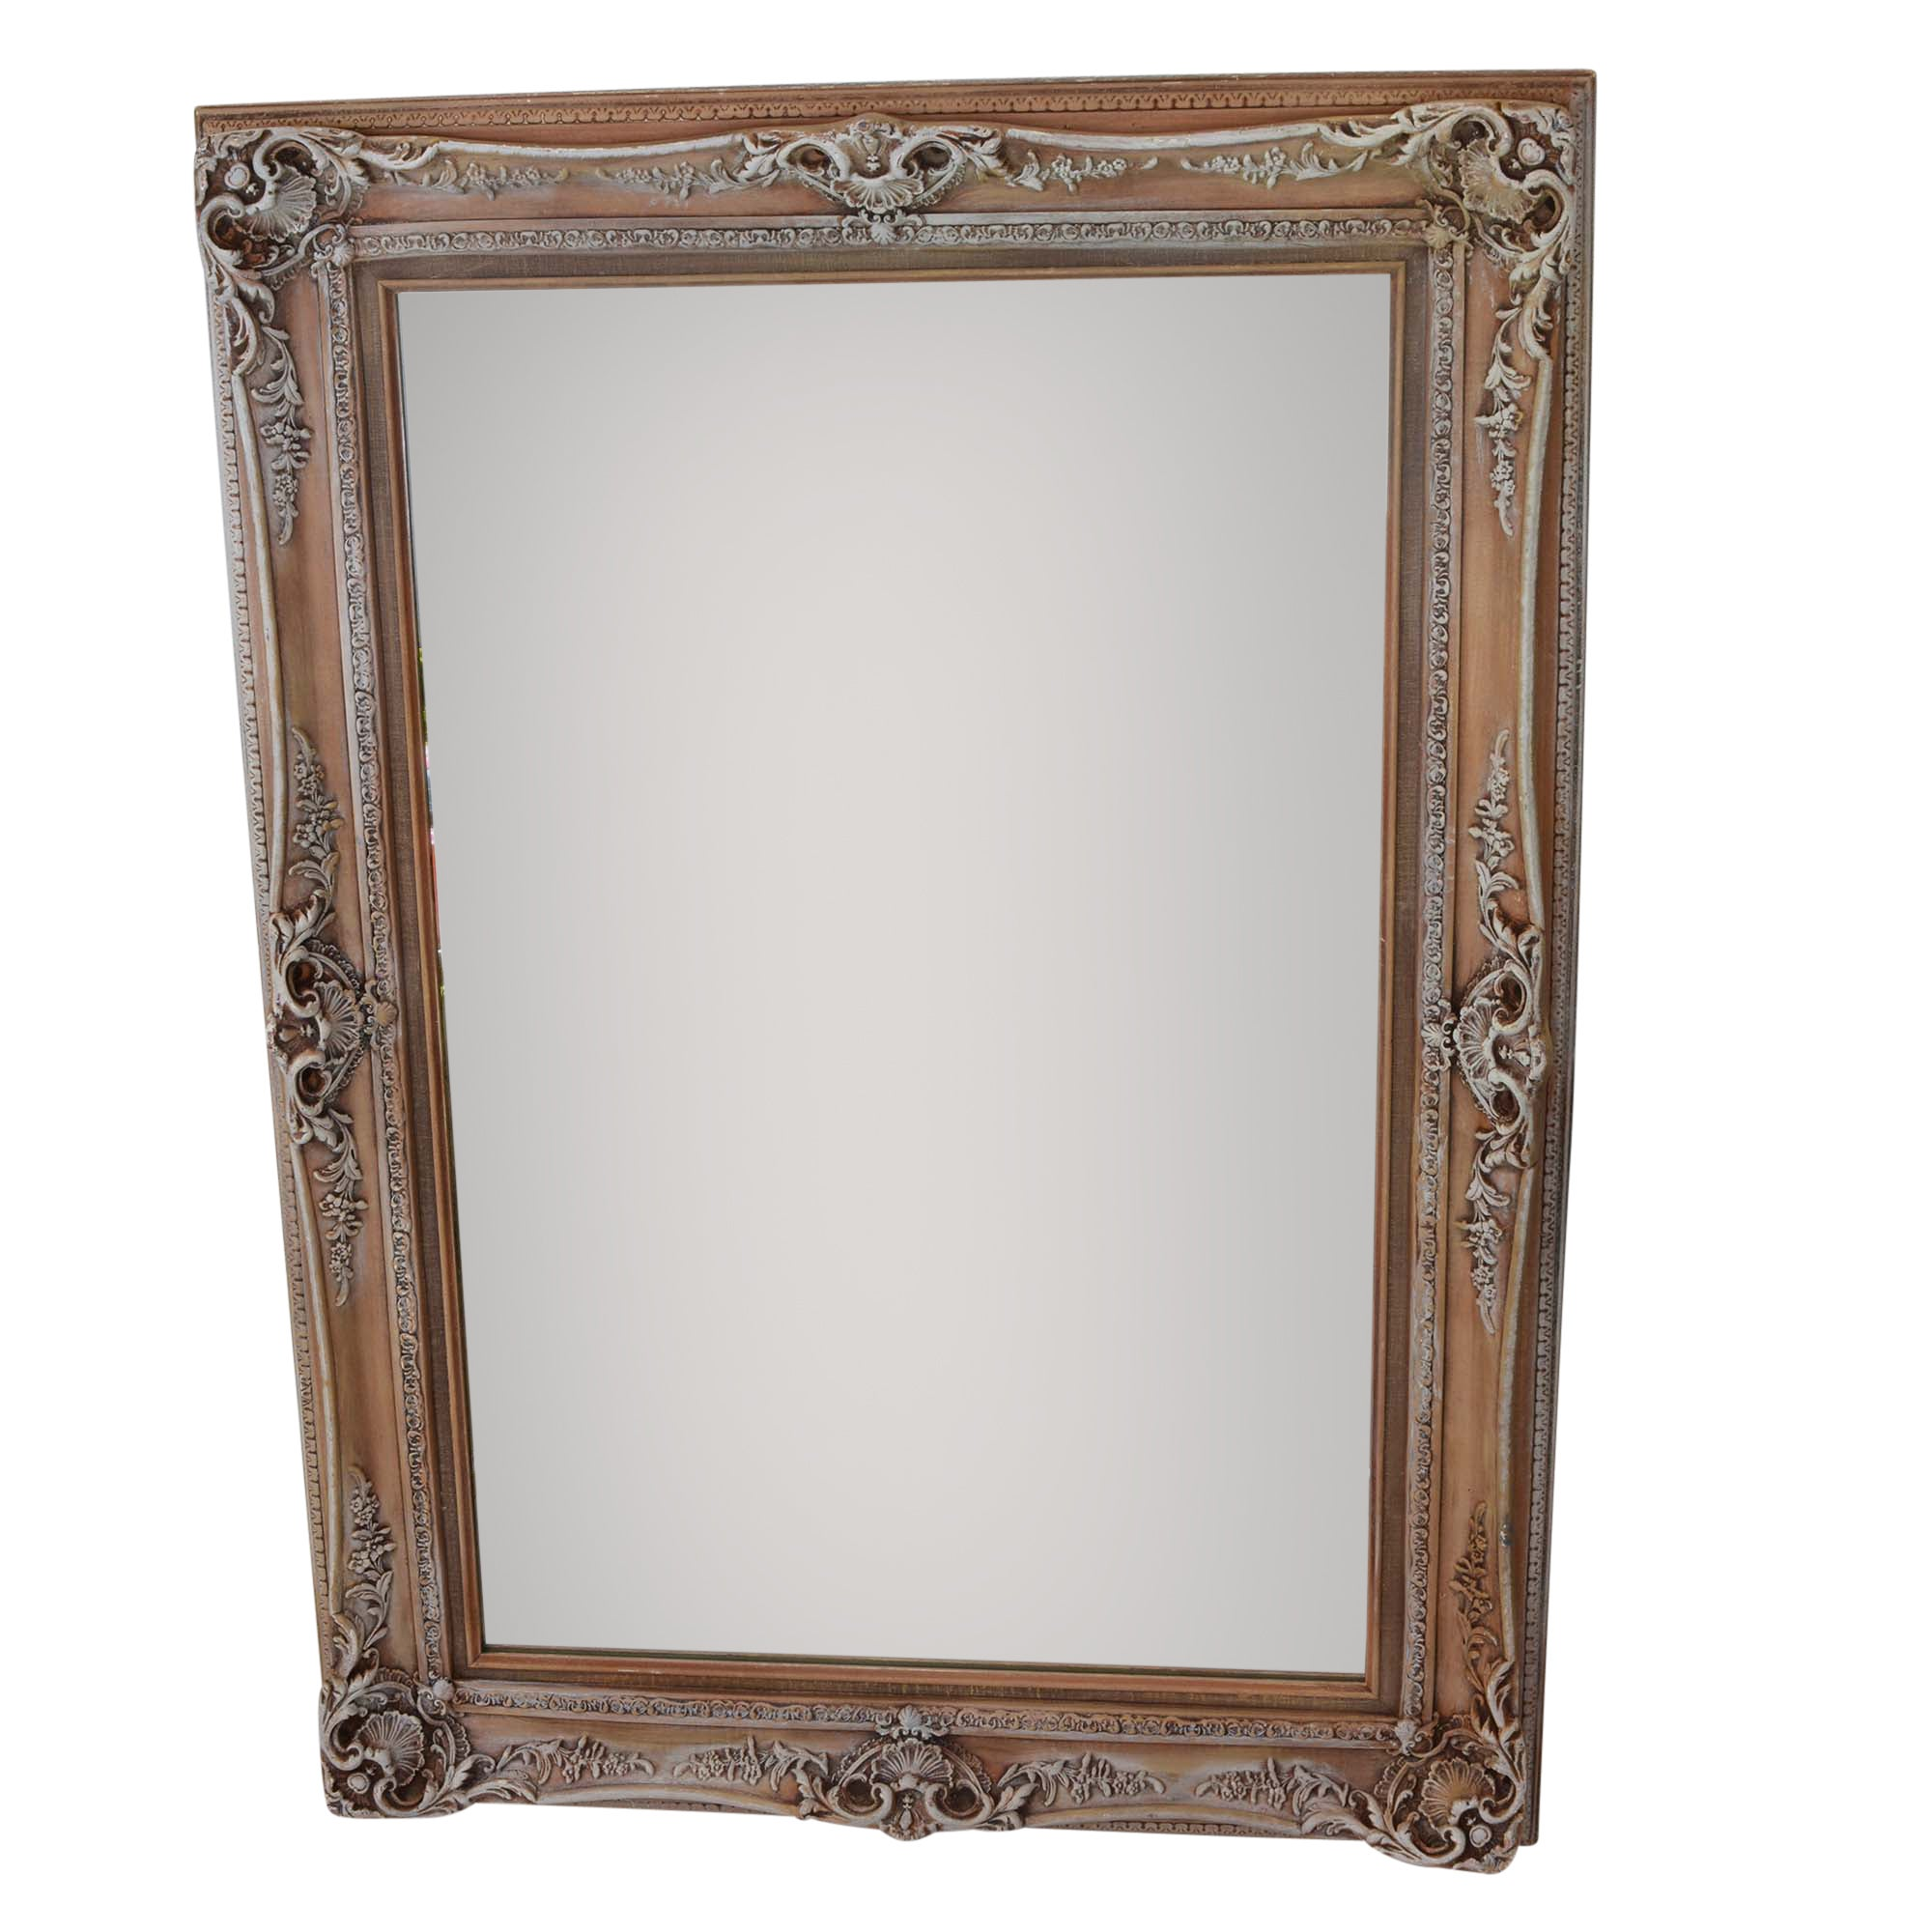 d1e201b76ab6 Antique Ornate Frames with New Mirrors, Pair For Sale at 1stdibs